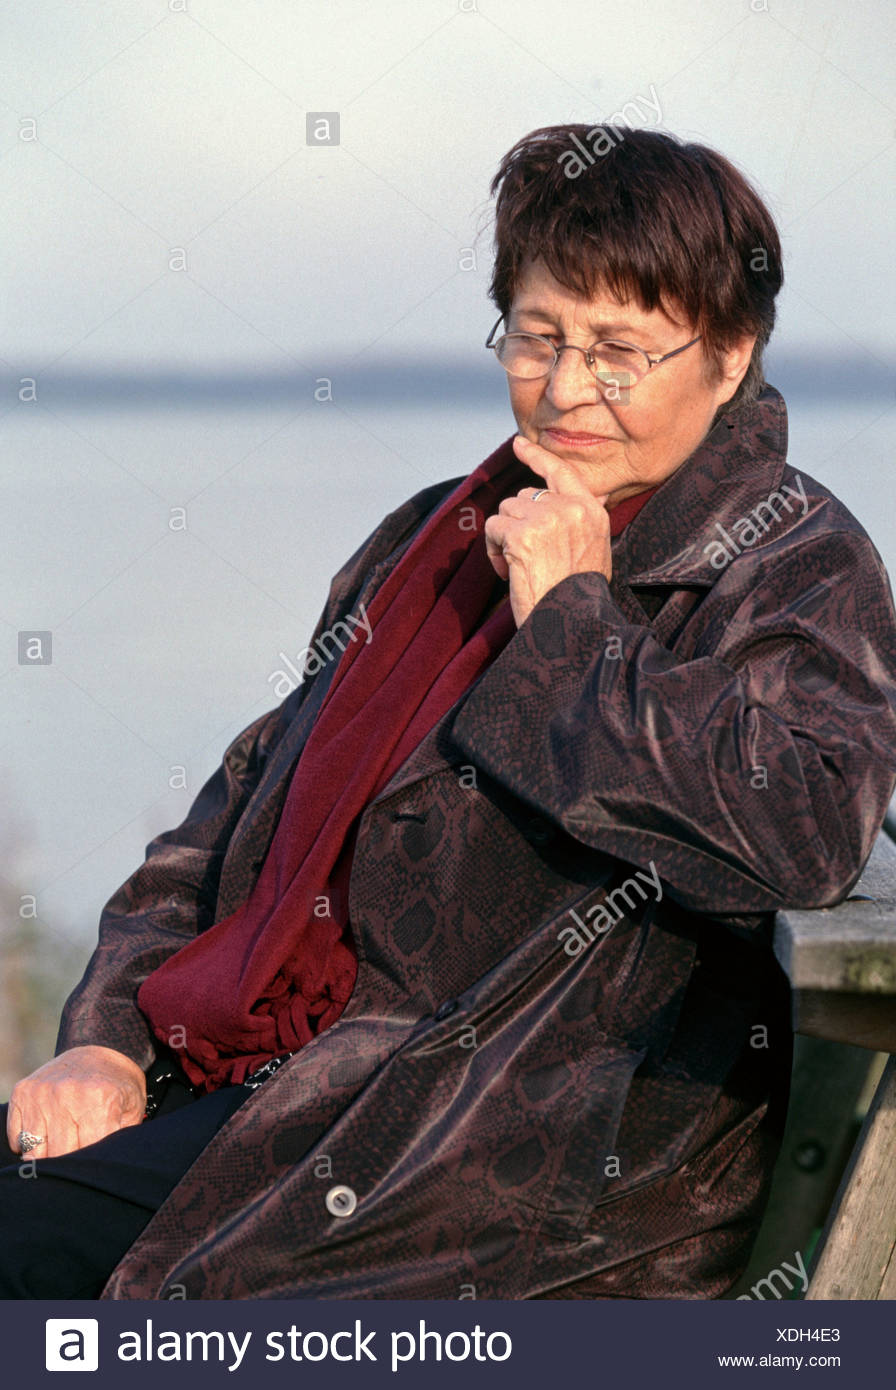 Senior woman 70s lonely outside  contemplating - Stock Image